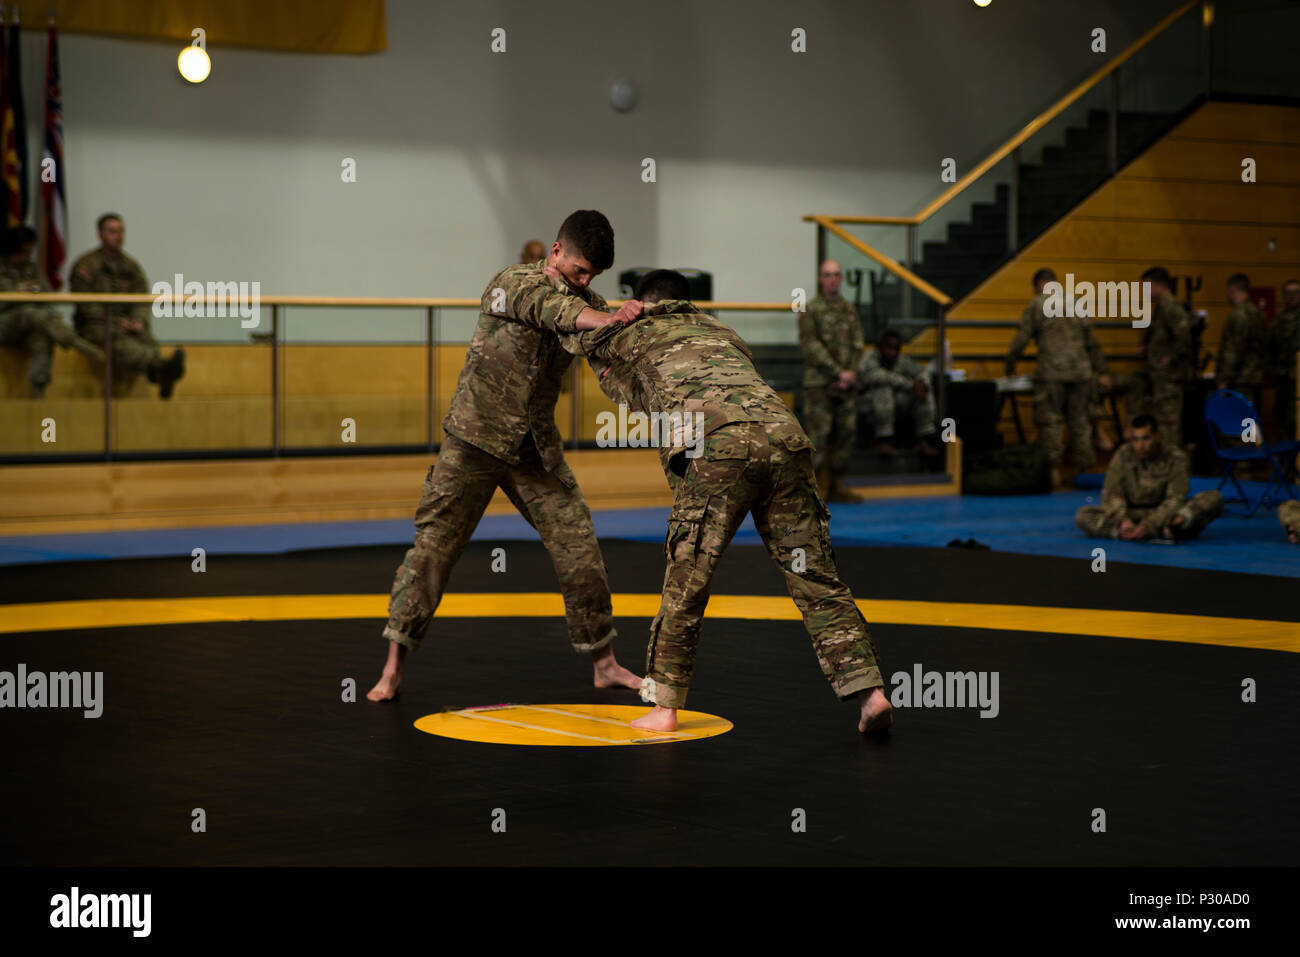 U.S. Army 1st Lt. Kendall Ward (left) with the 173rd Airborne Brigade and 2nd Lt. Justin Ganzer (right) with the 21st Theater Sustainment Command compete in a combatives tournament during the 2016 European Best Warrior Competition held at the 7th Army Training Command's Grafenwoehr Training Area, Germany, Aug. 11, 2016. The intense, grueling annual weeklong competition is the most prestigious competitive event of the region. (U.S. Army photo by Spc. Elliott Banks) - Stock Image